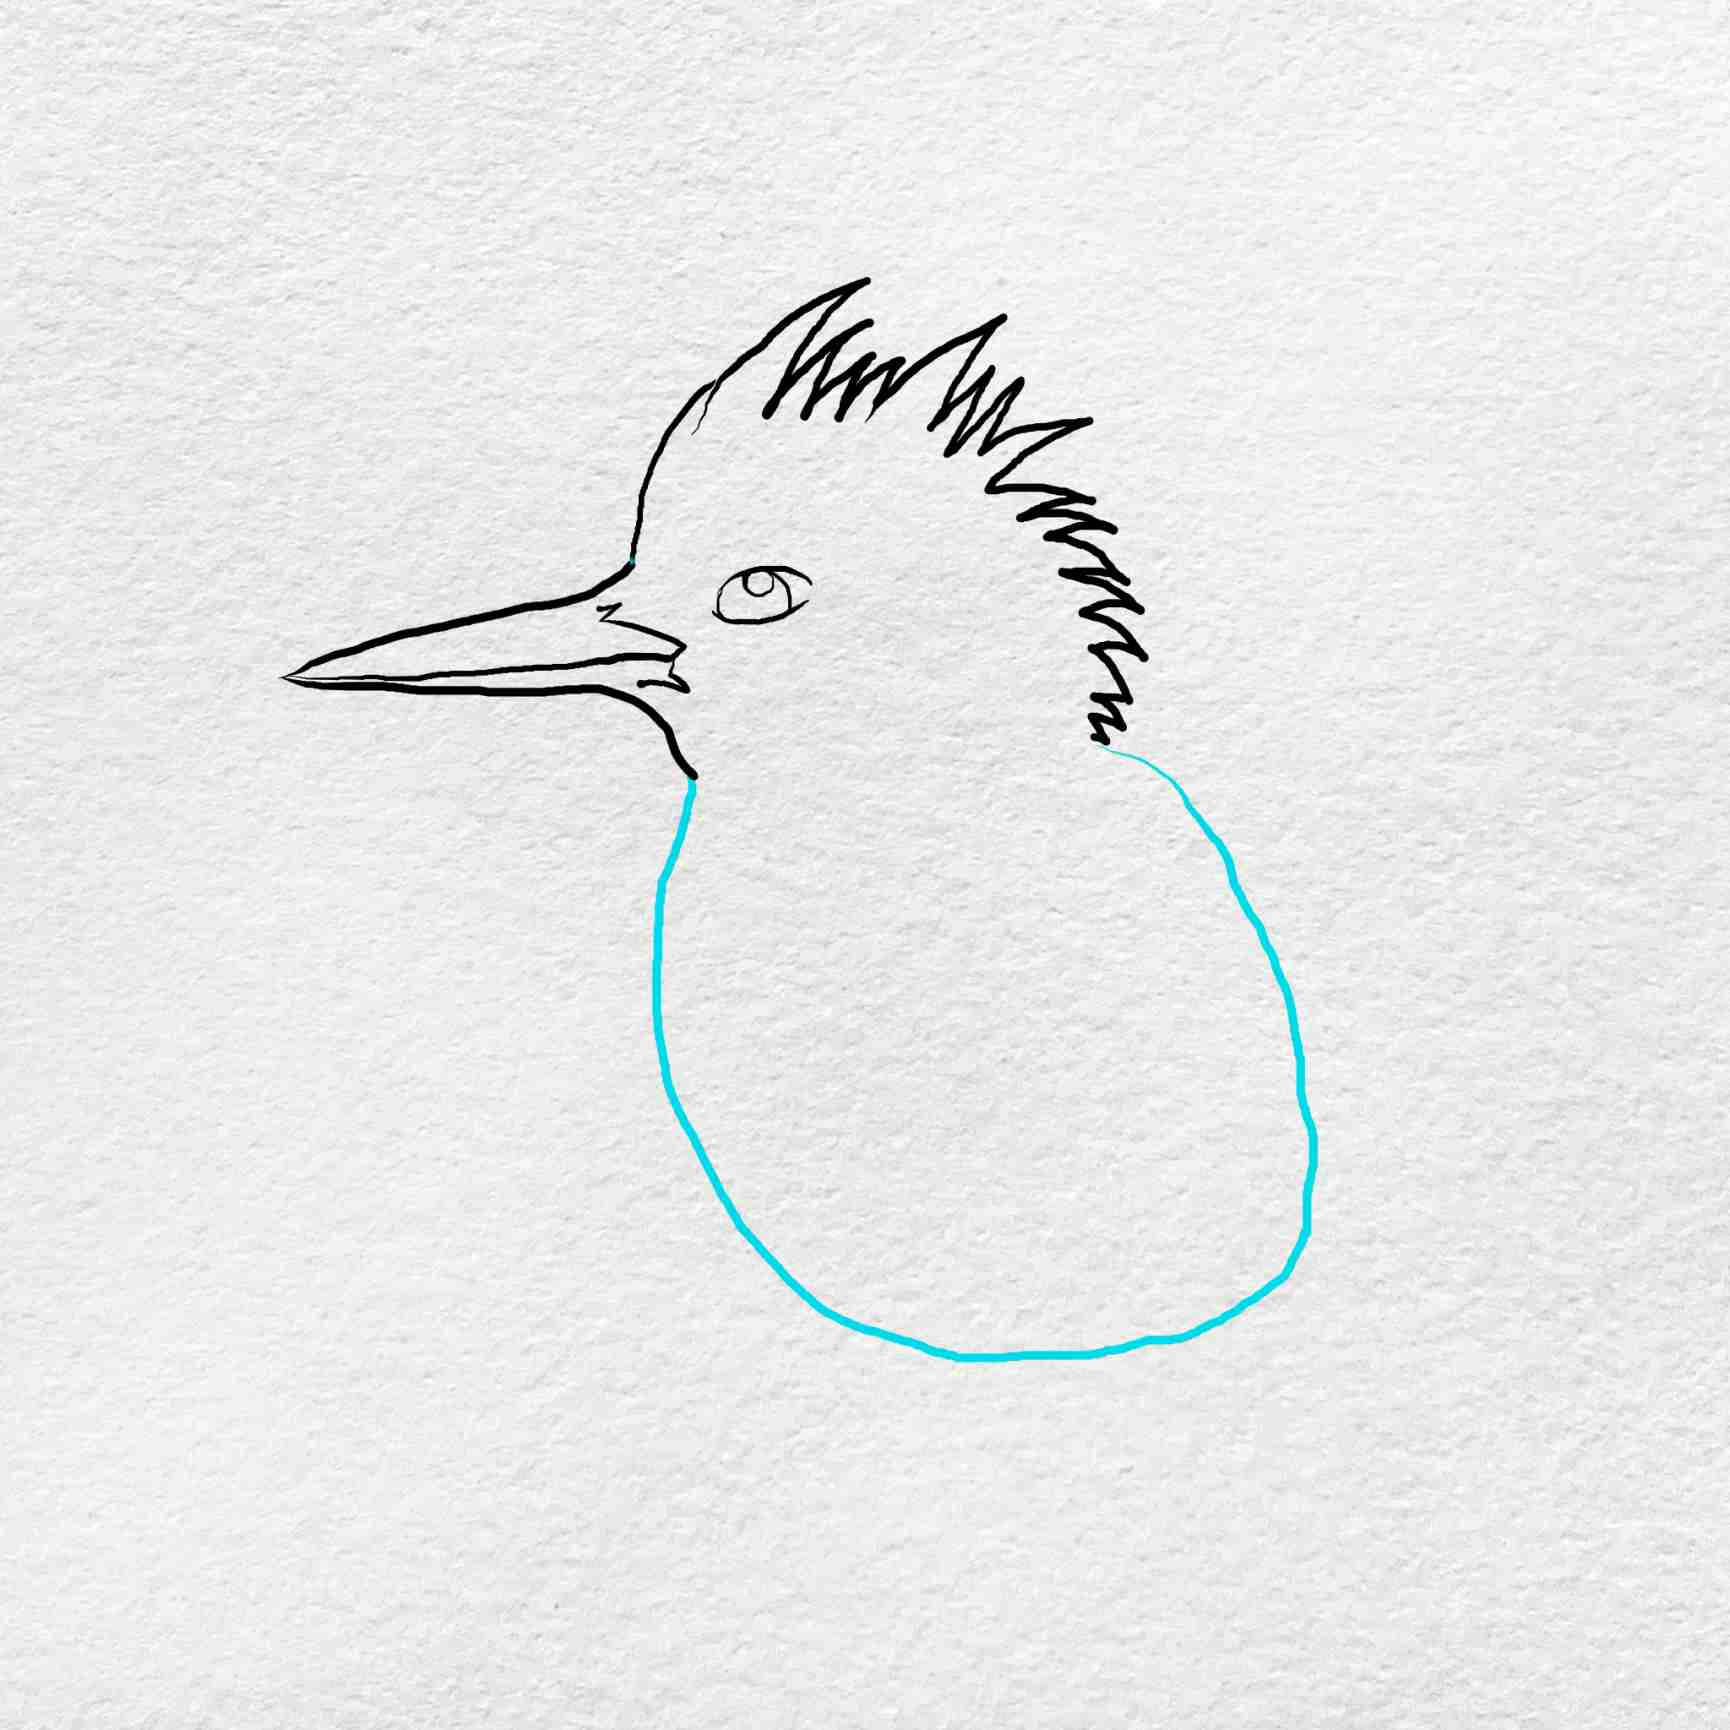 How To Draw Kingfisher: Step 3